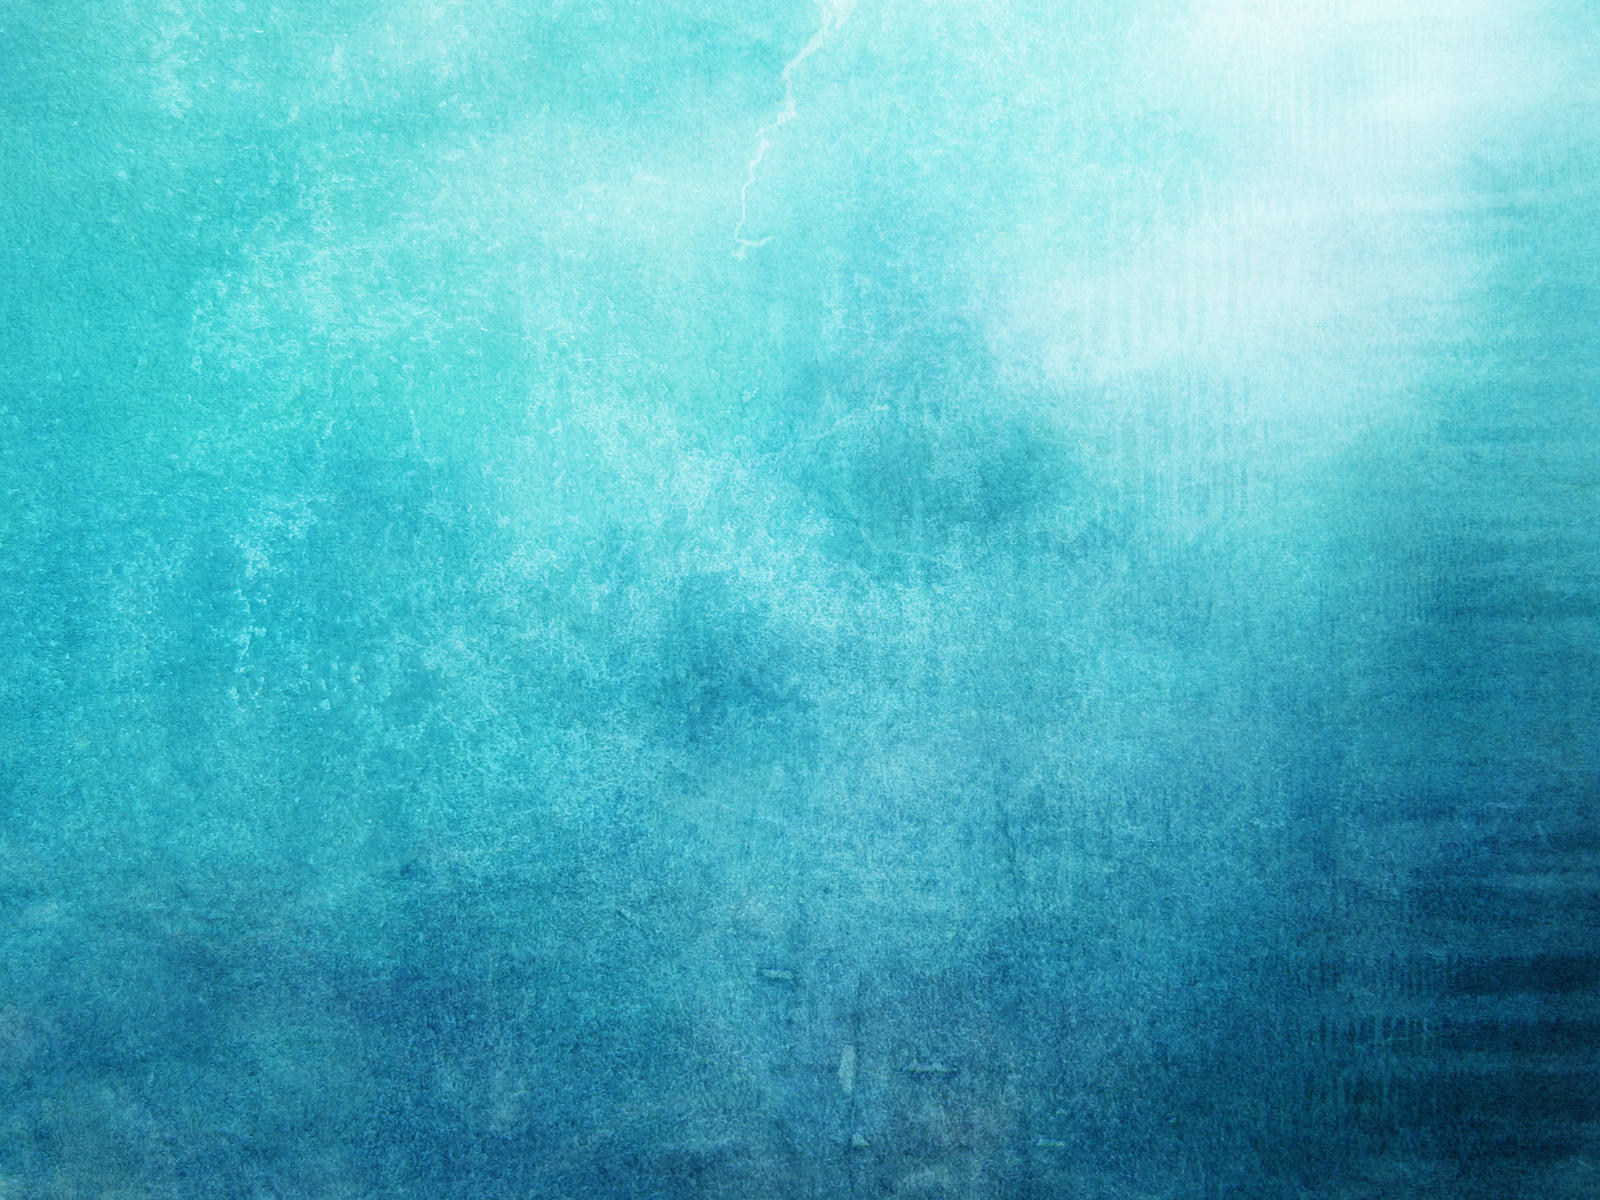 Pictures of Ocean Texture Photoshop - #rock-cafe